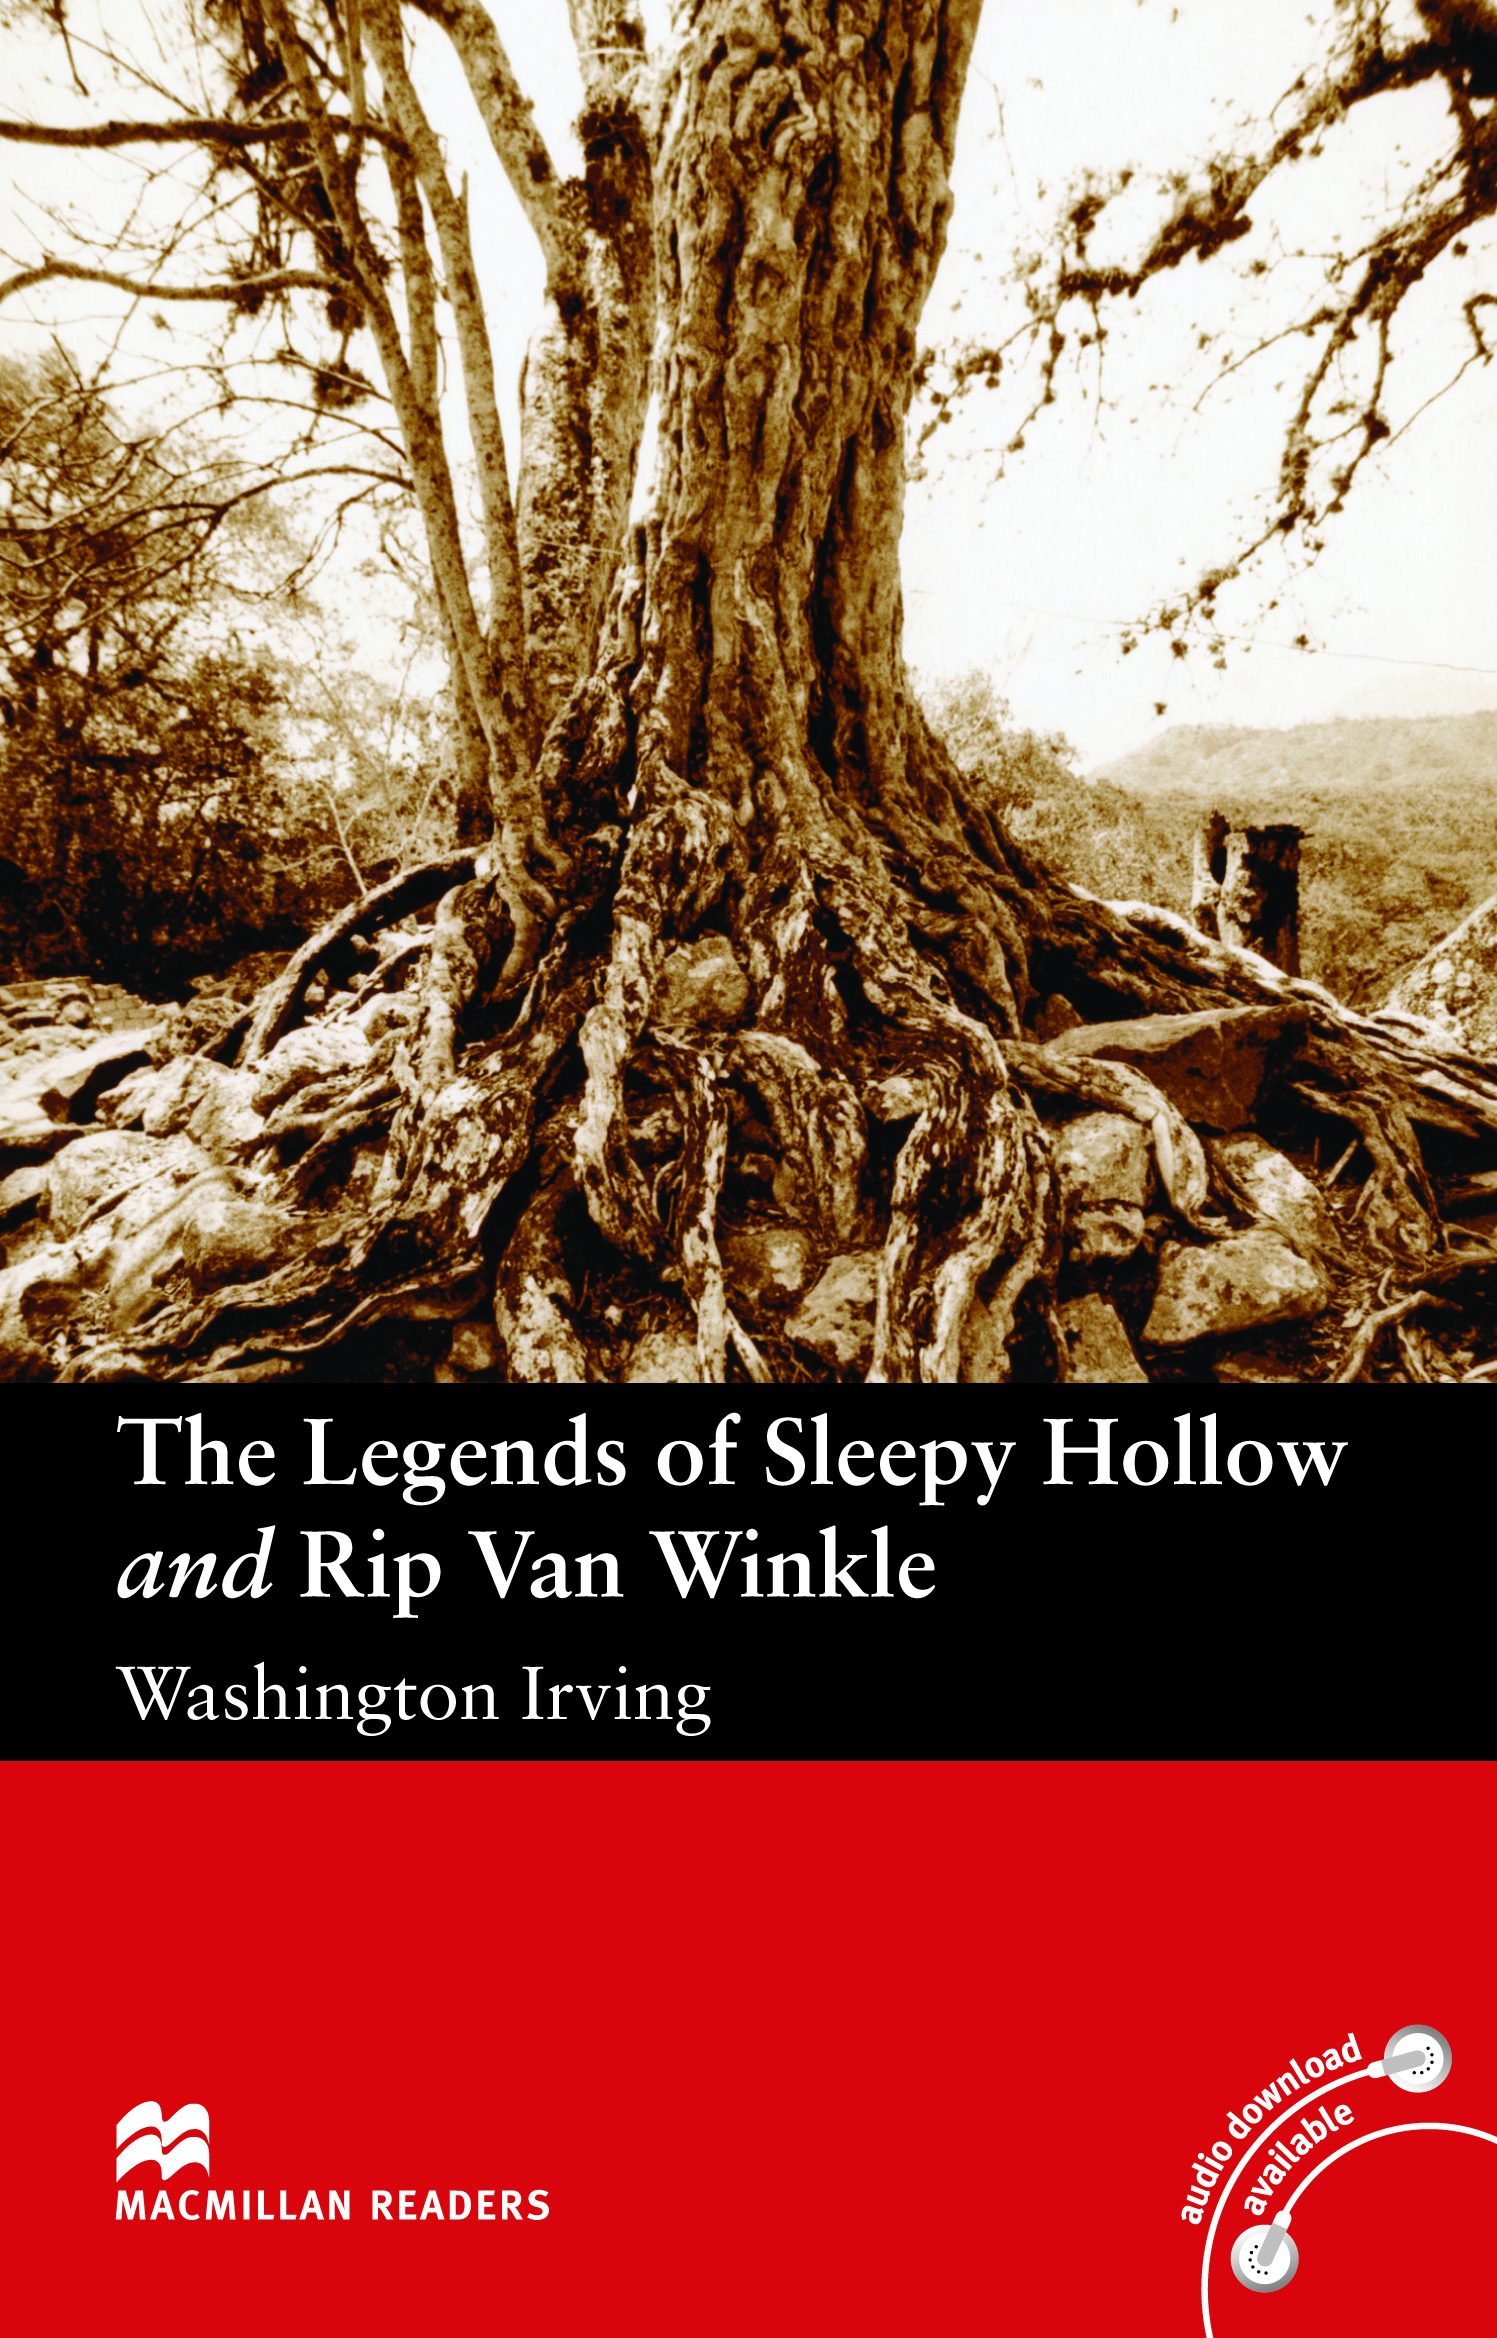 Macmillan Readers: The Legends of Sleepy Hollow and Rip Van Winkle without CD